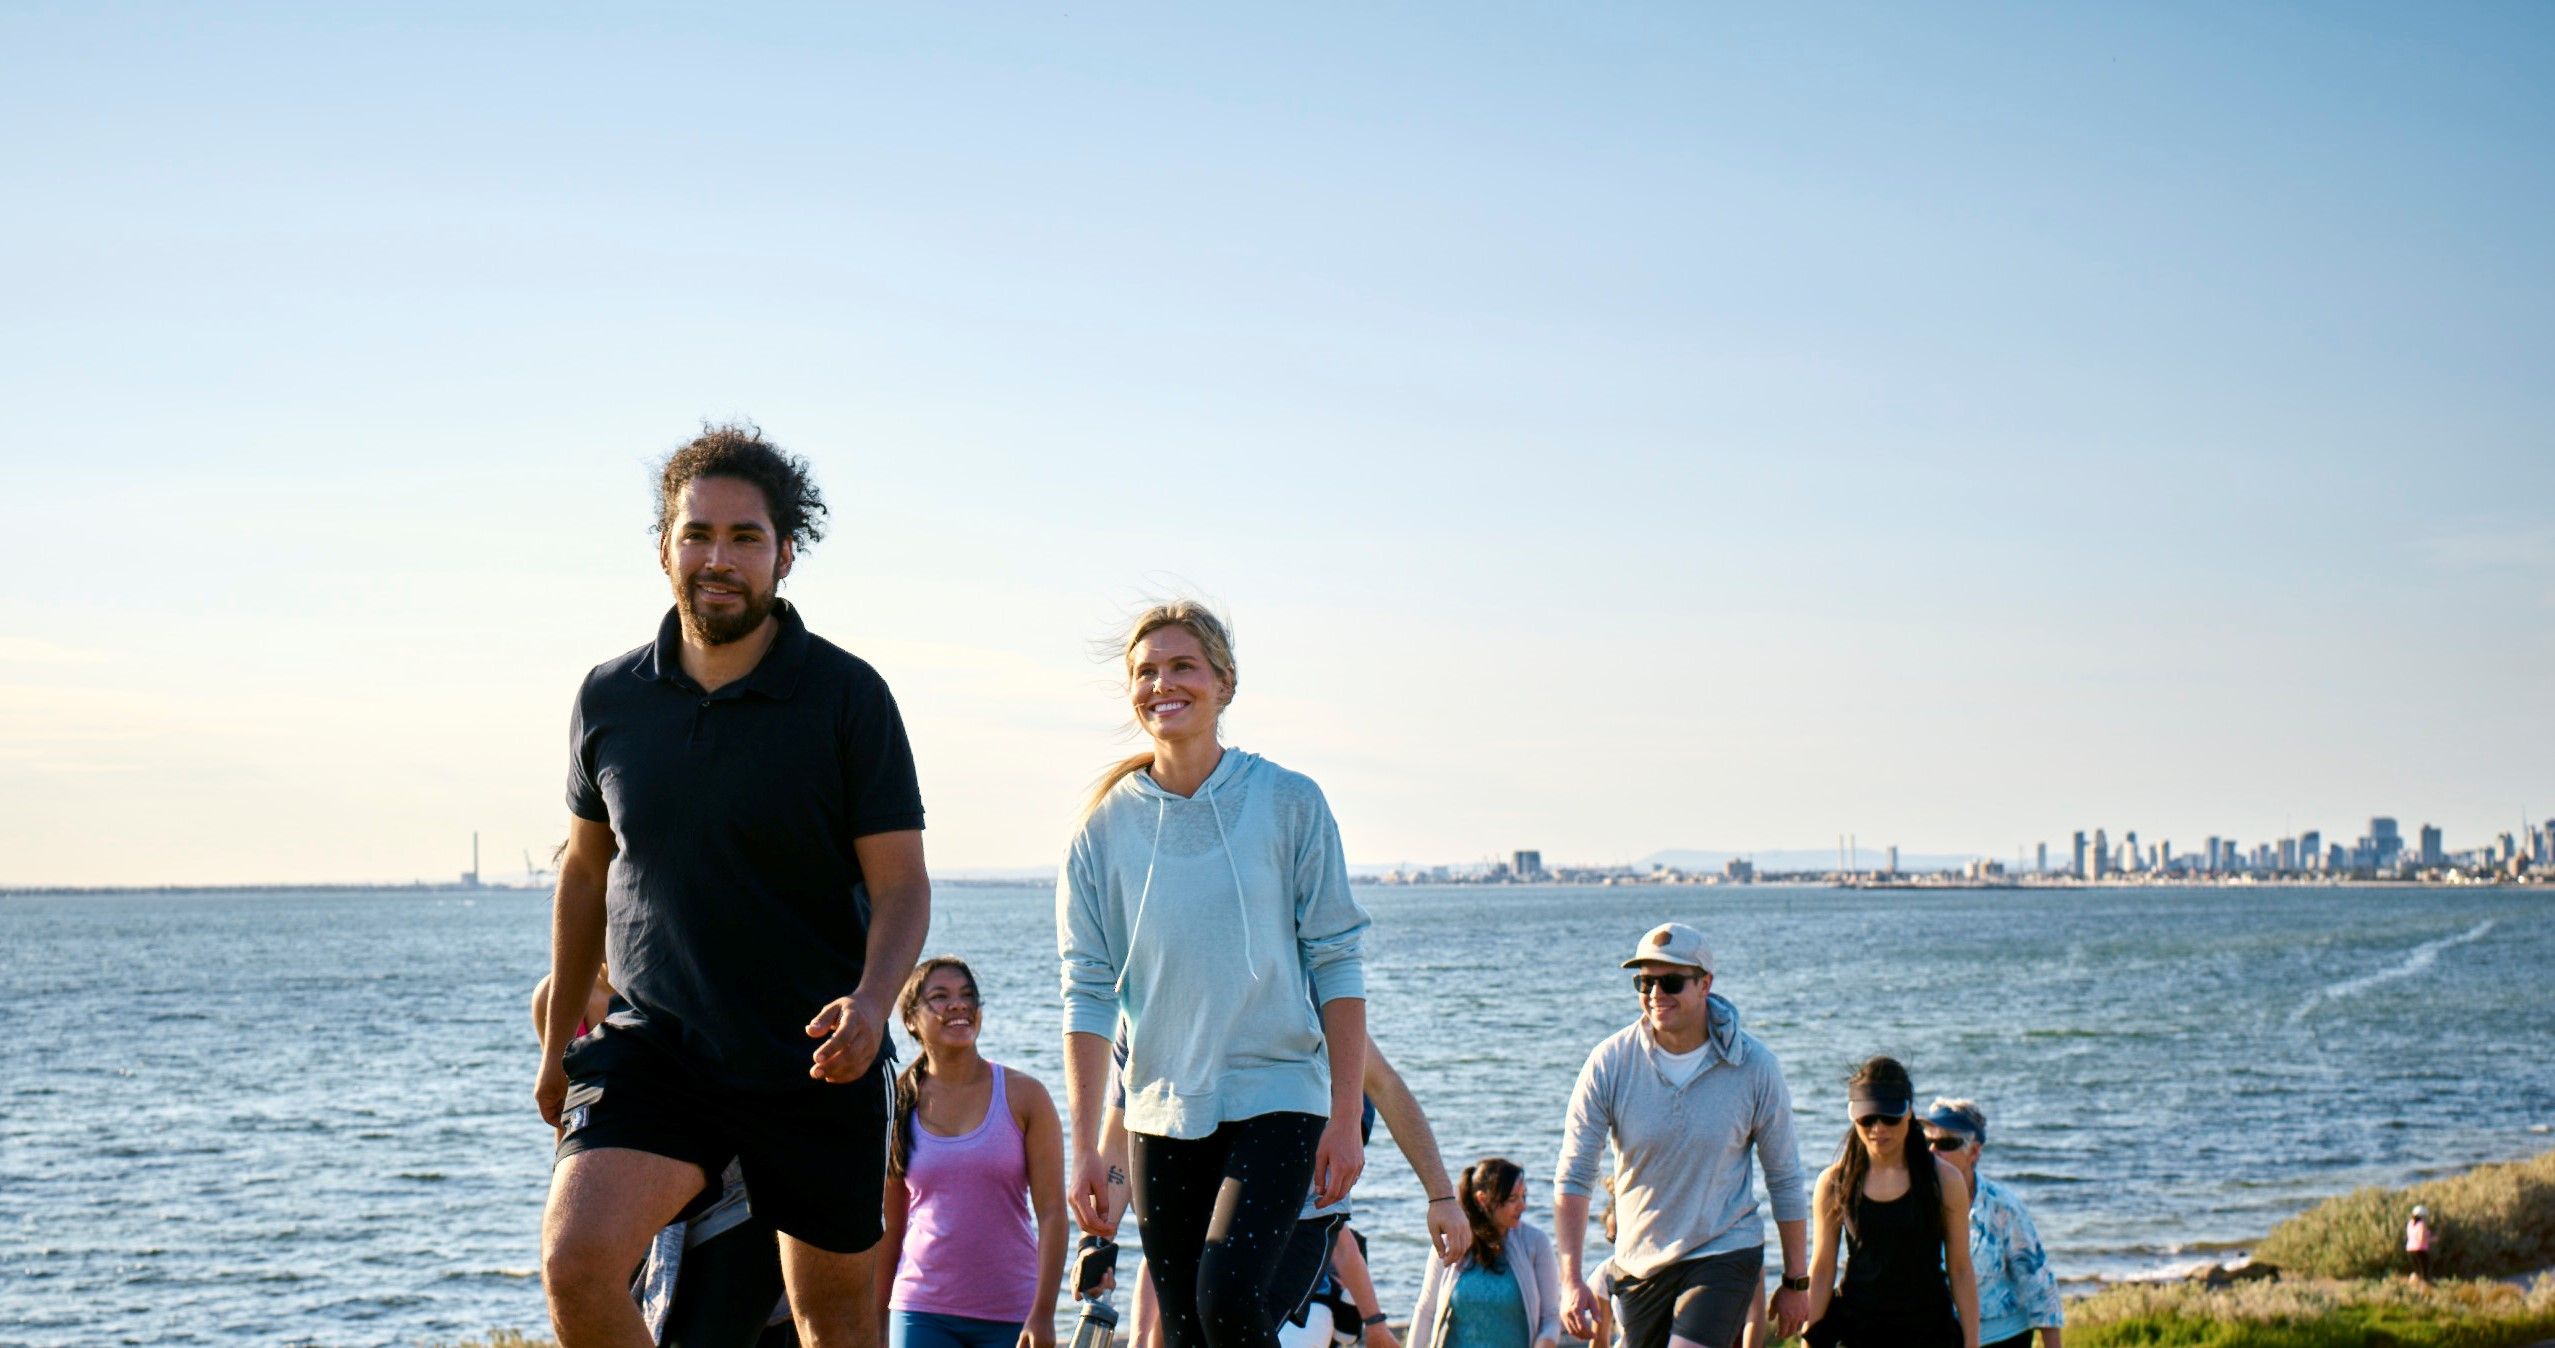 Preventing chronic diseases through physical activity